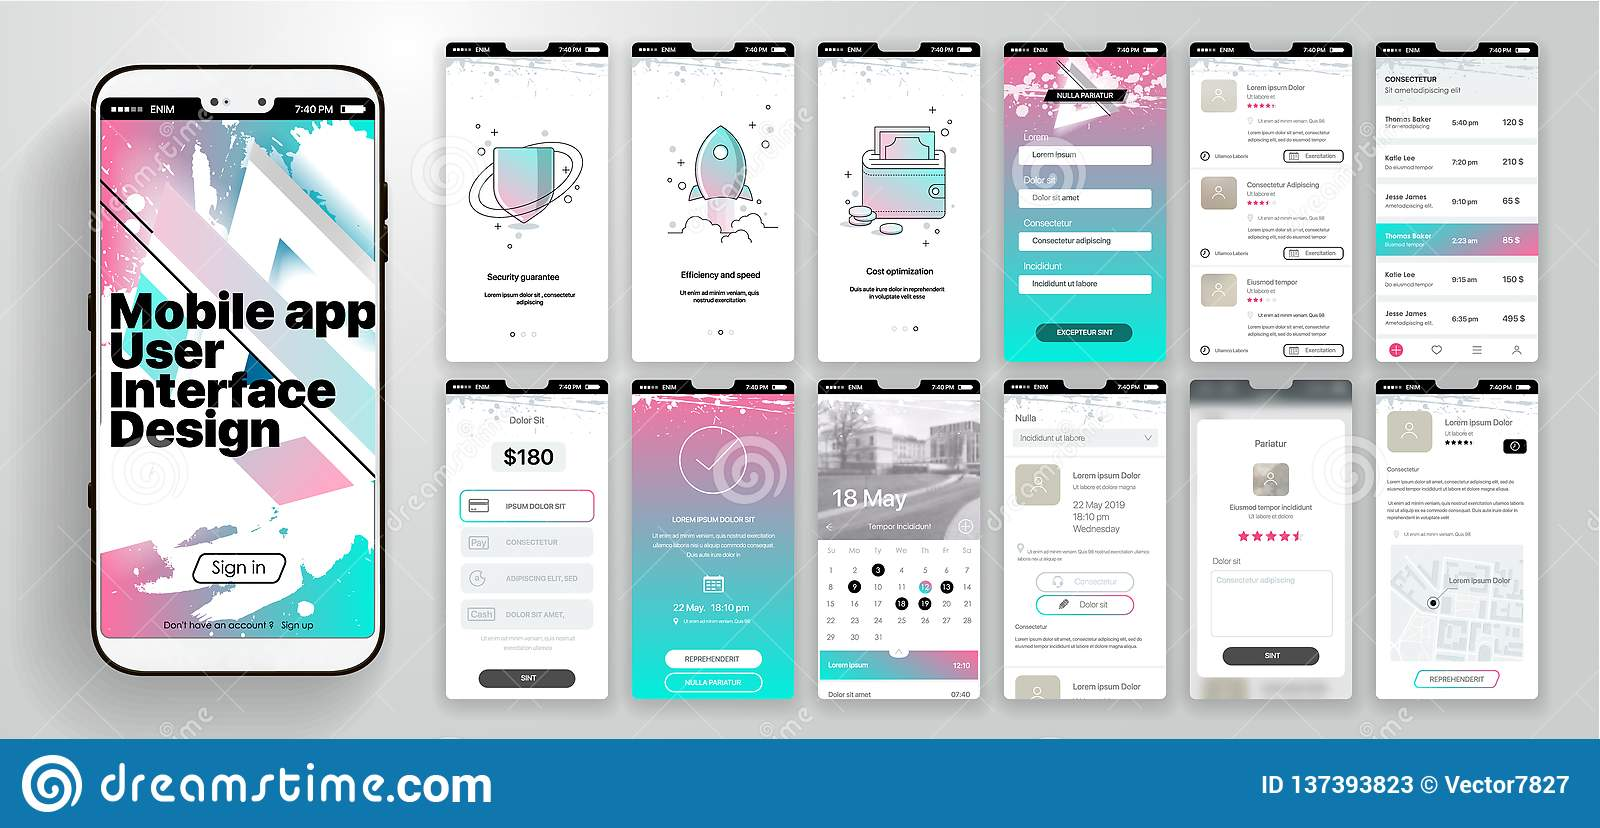 Design Of The Mobile Application, UI, UX. A Set Of GUI Screens With on ecommerce design, mobile optimization, development design, mobile website development, project management design, movie design, travel design, mobile system architecture, mobile user interface, css design, operating system design, business design, mobile game development, design design, ui ux design, photography design, web design, mobile development architecture, mobile management, ios design,